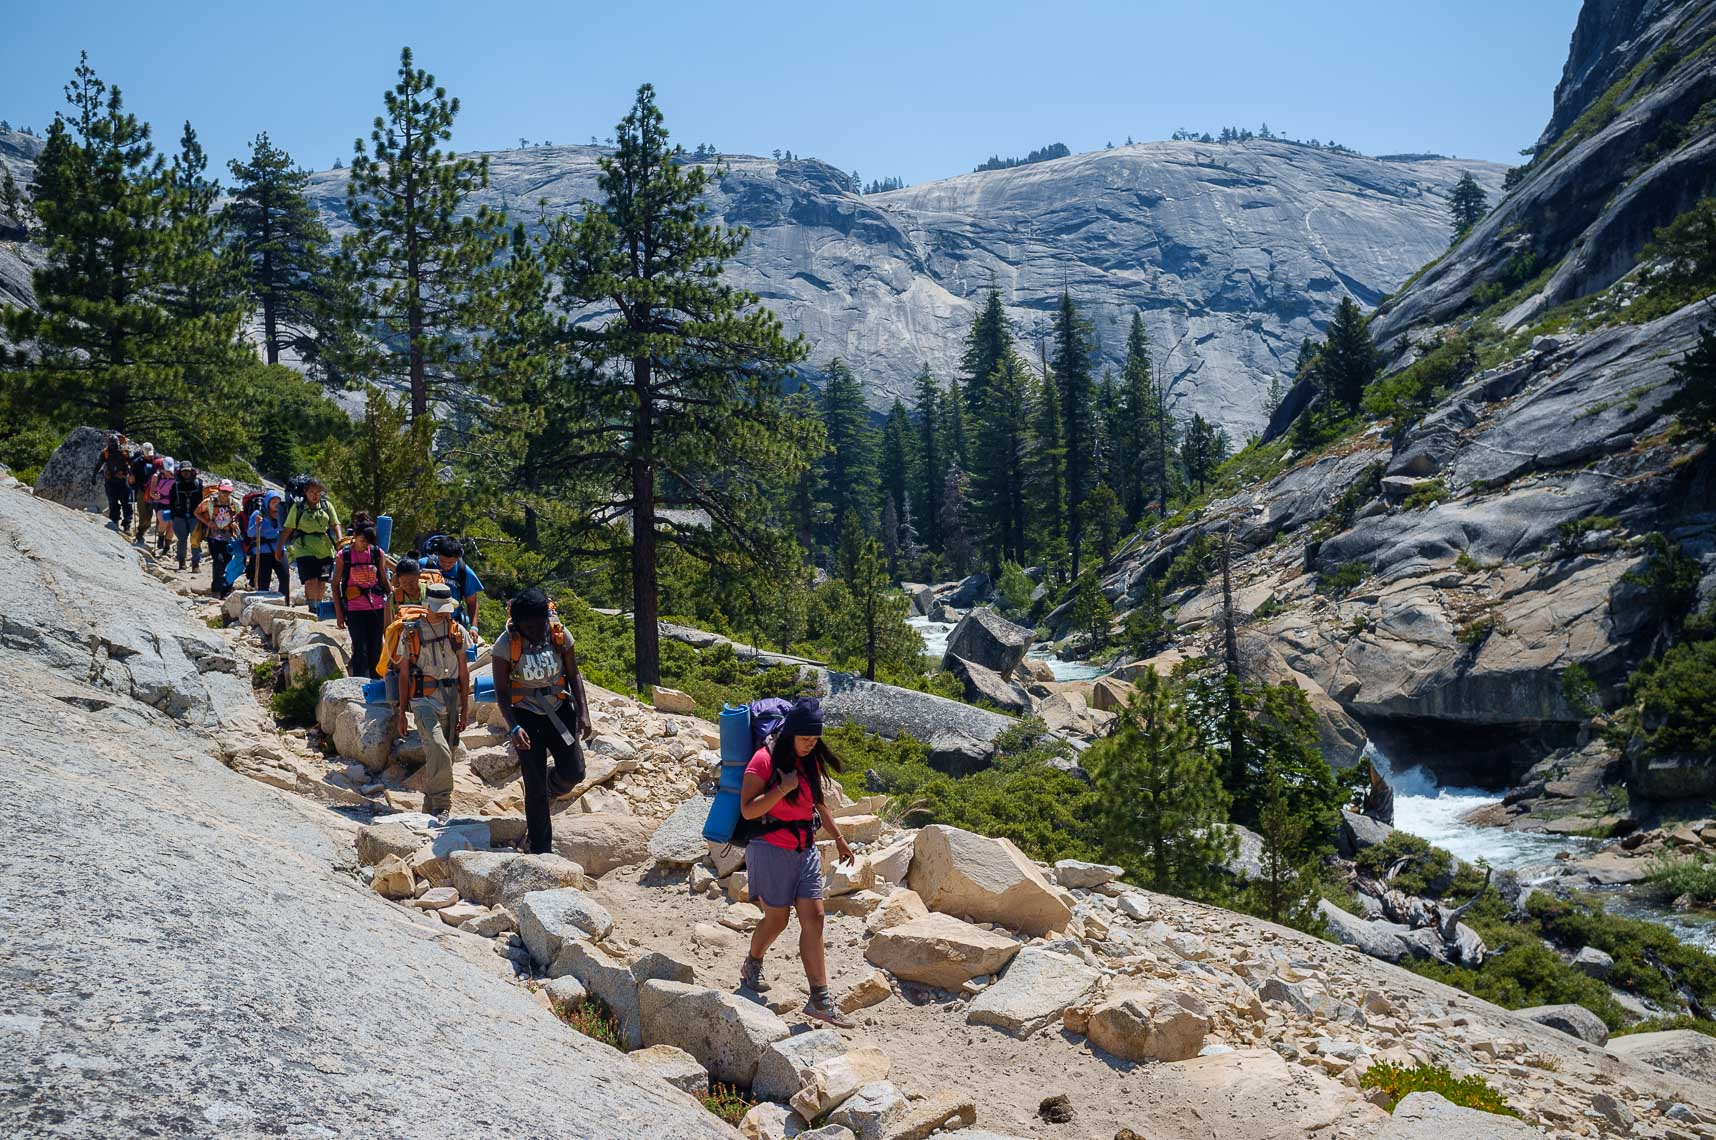 patrick_cavan_brown_woods_project_yosemite_camping_hiking_backpacking-4818